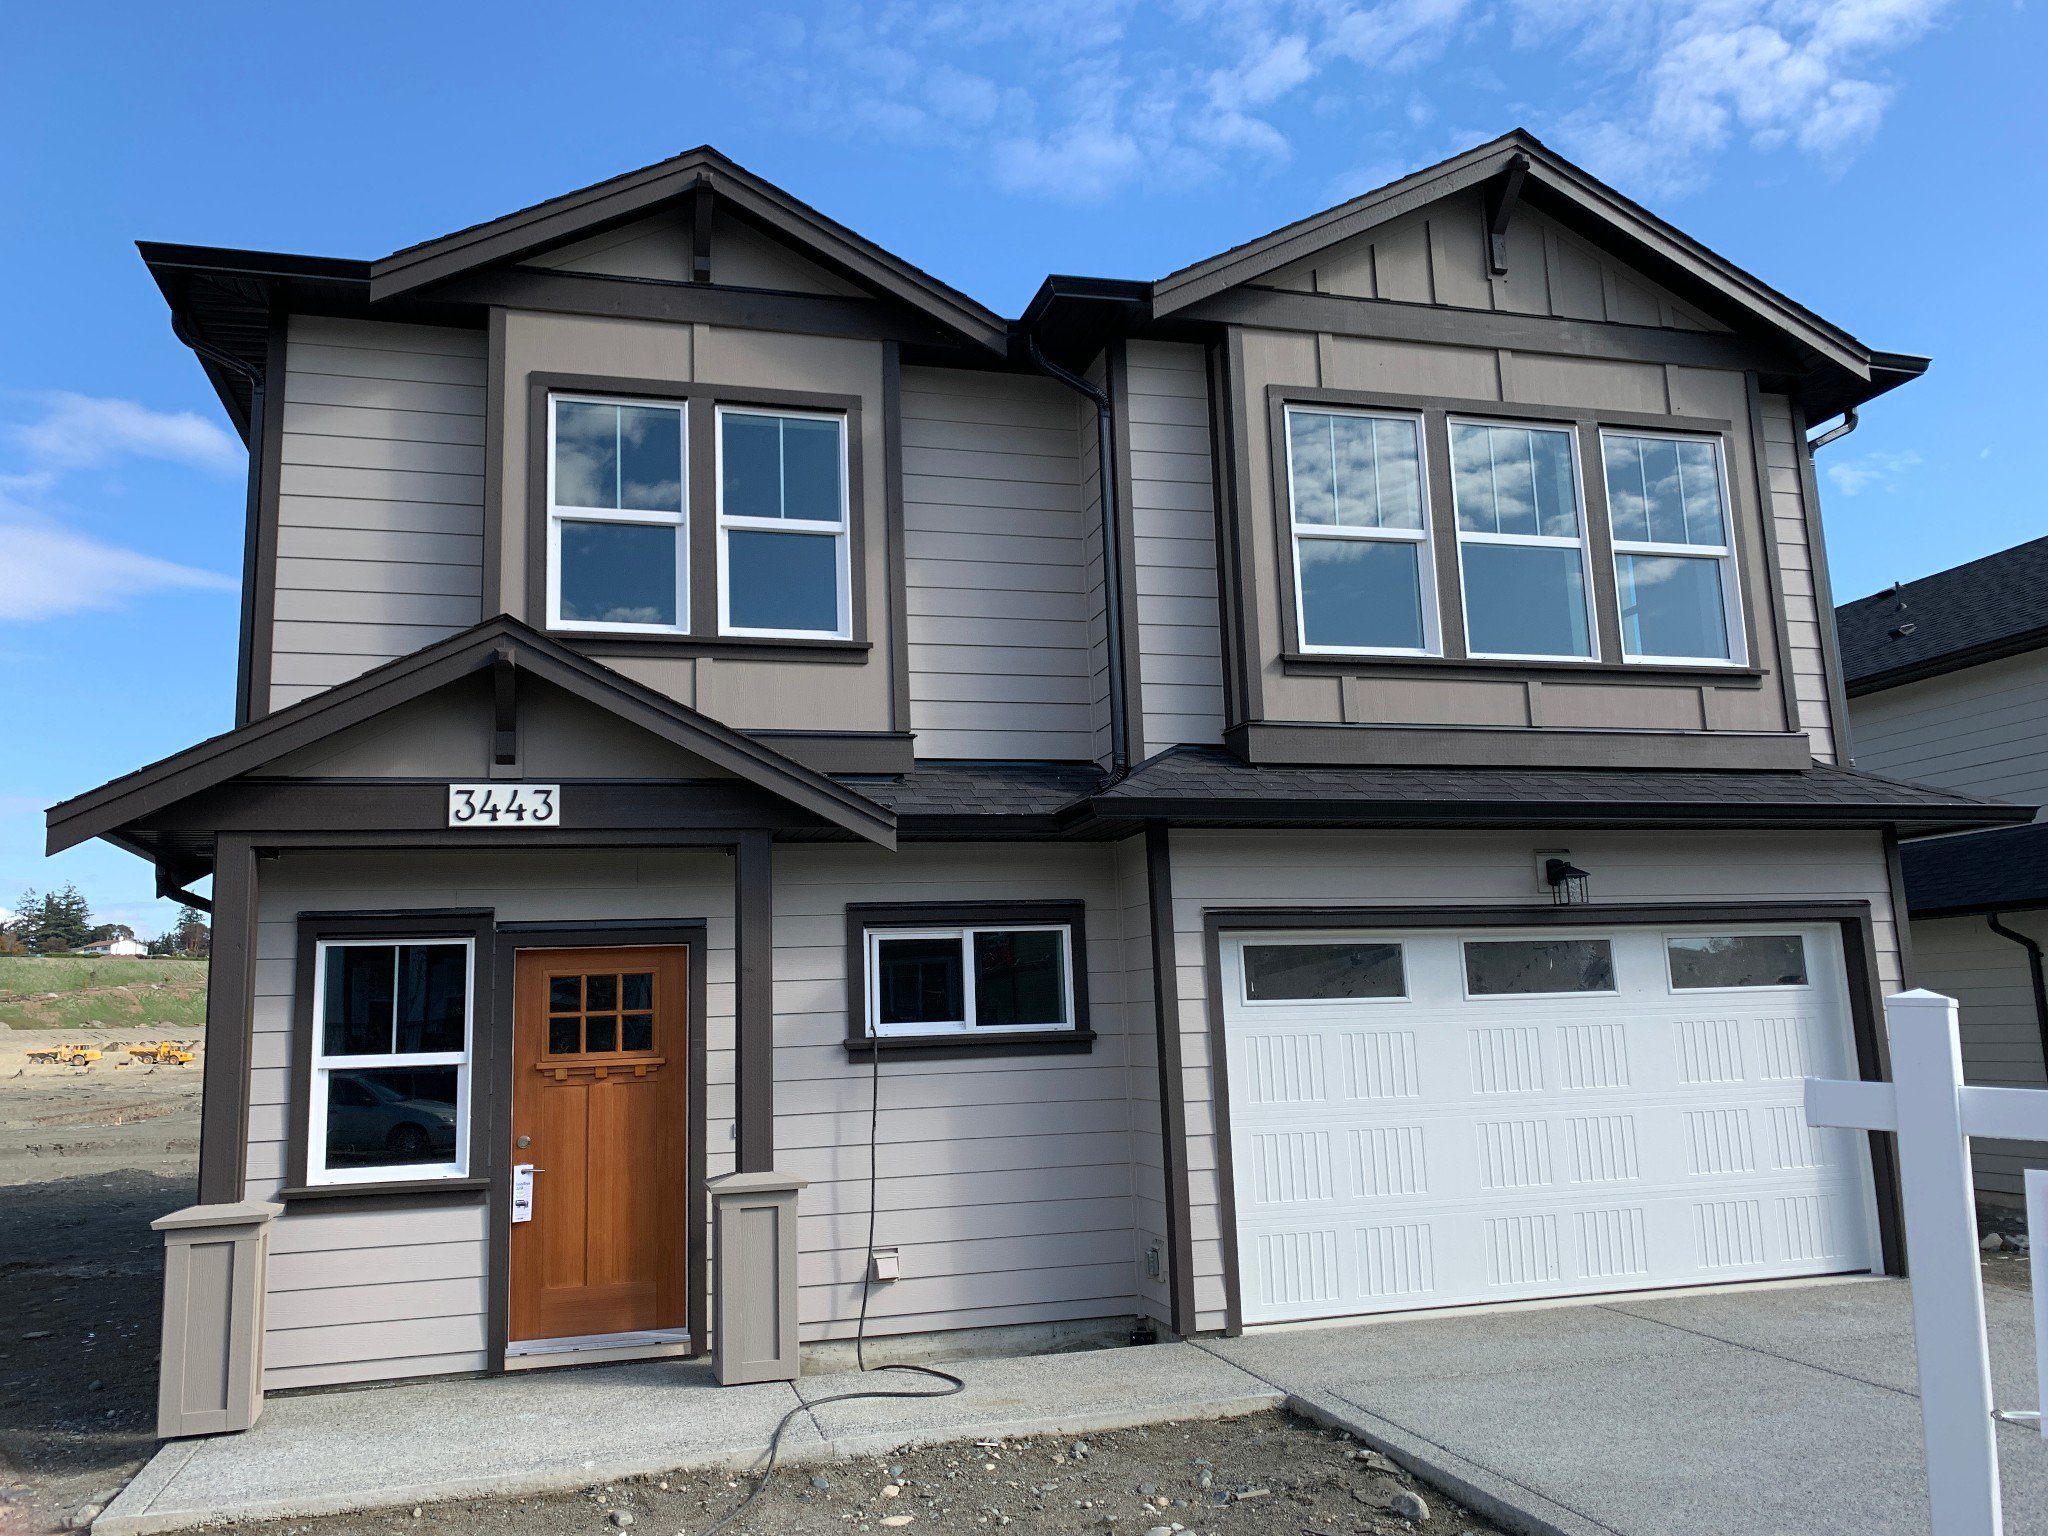 Main Photo: 3443 Sparrowhawk Ave in : Co Royal Bay House for sale (Colwood)  : MLS®# 823432